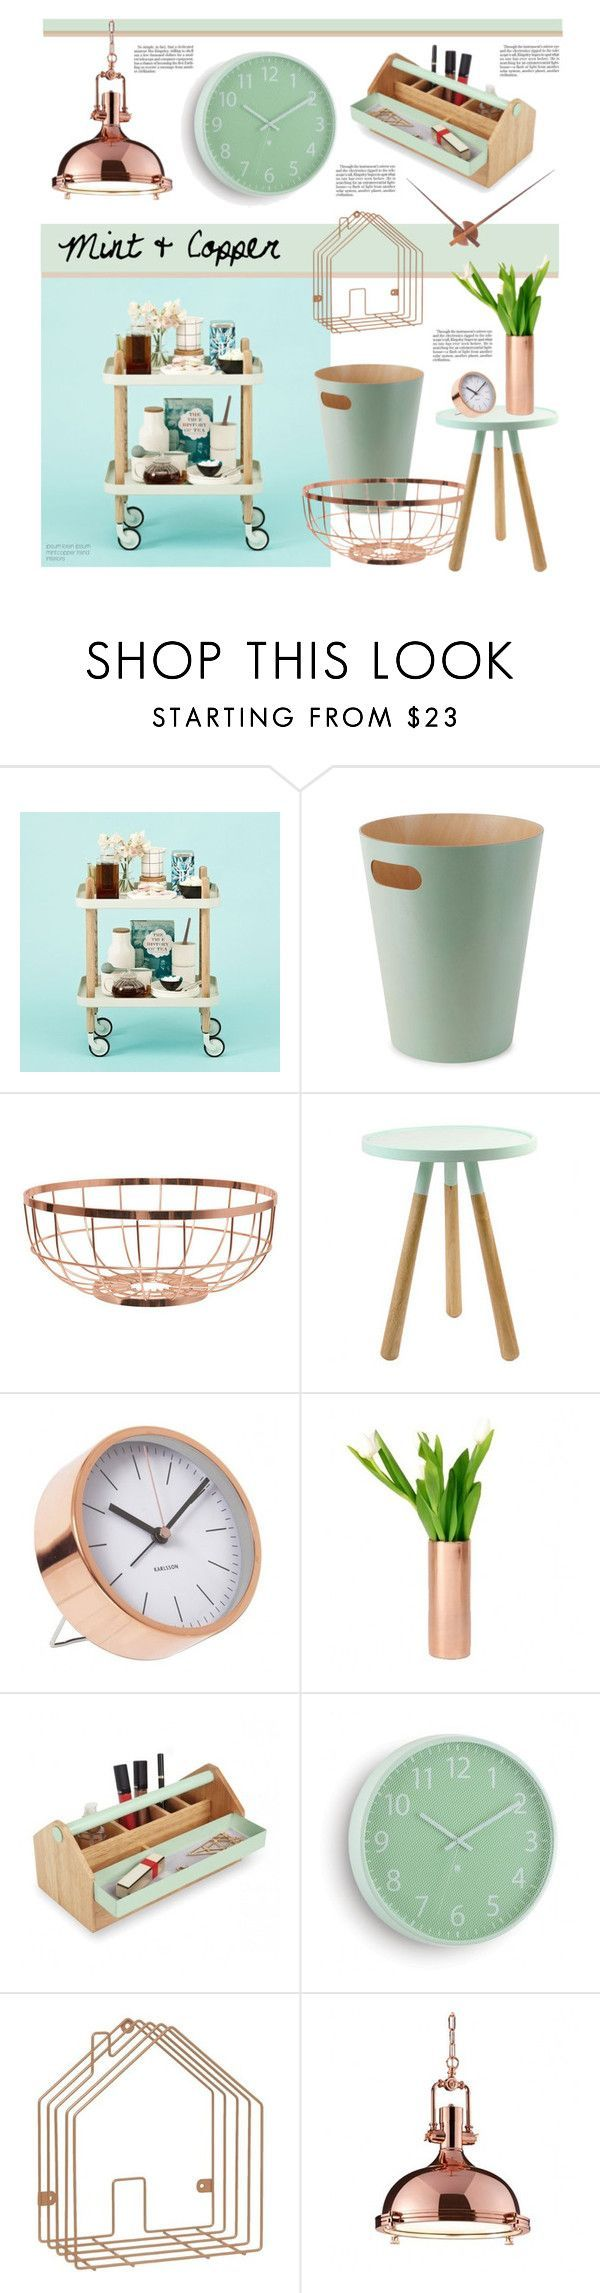 Mint Copper By Redcandyuk On Polyvore Featuring Interior Interiors Interior Design Copper Decormint Colorhome